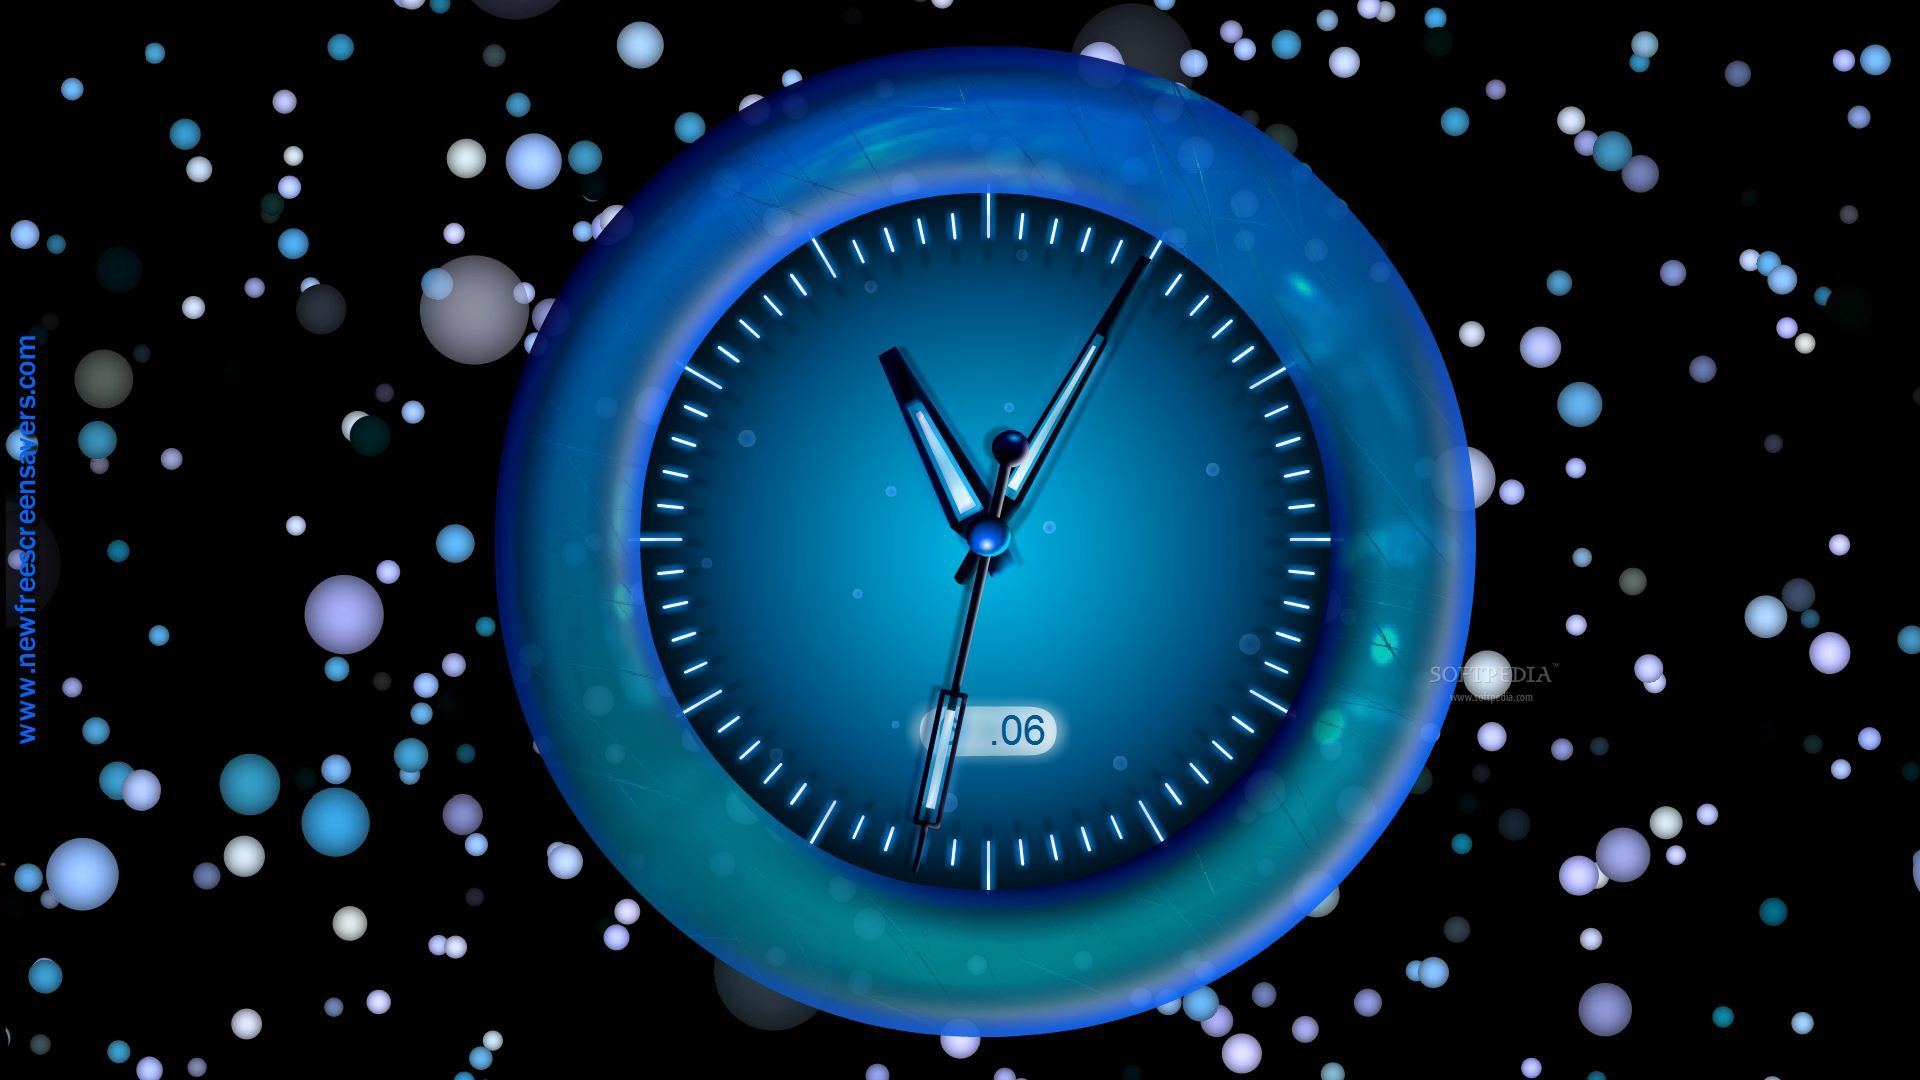 download free radiating clock screensaver radiating clock